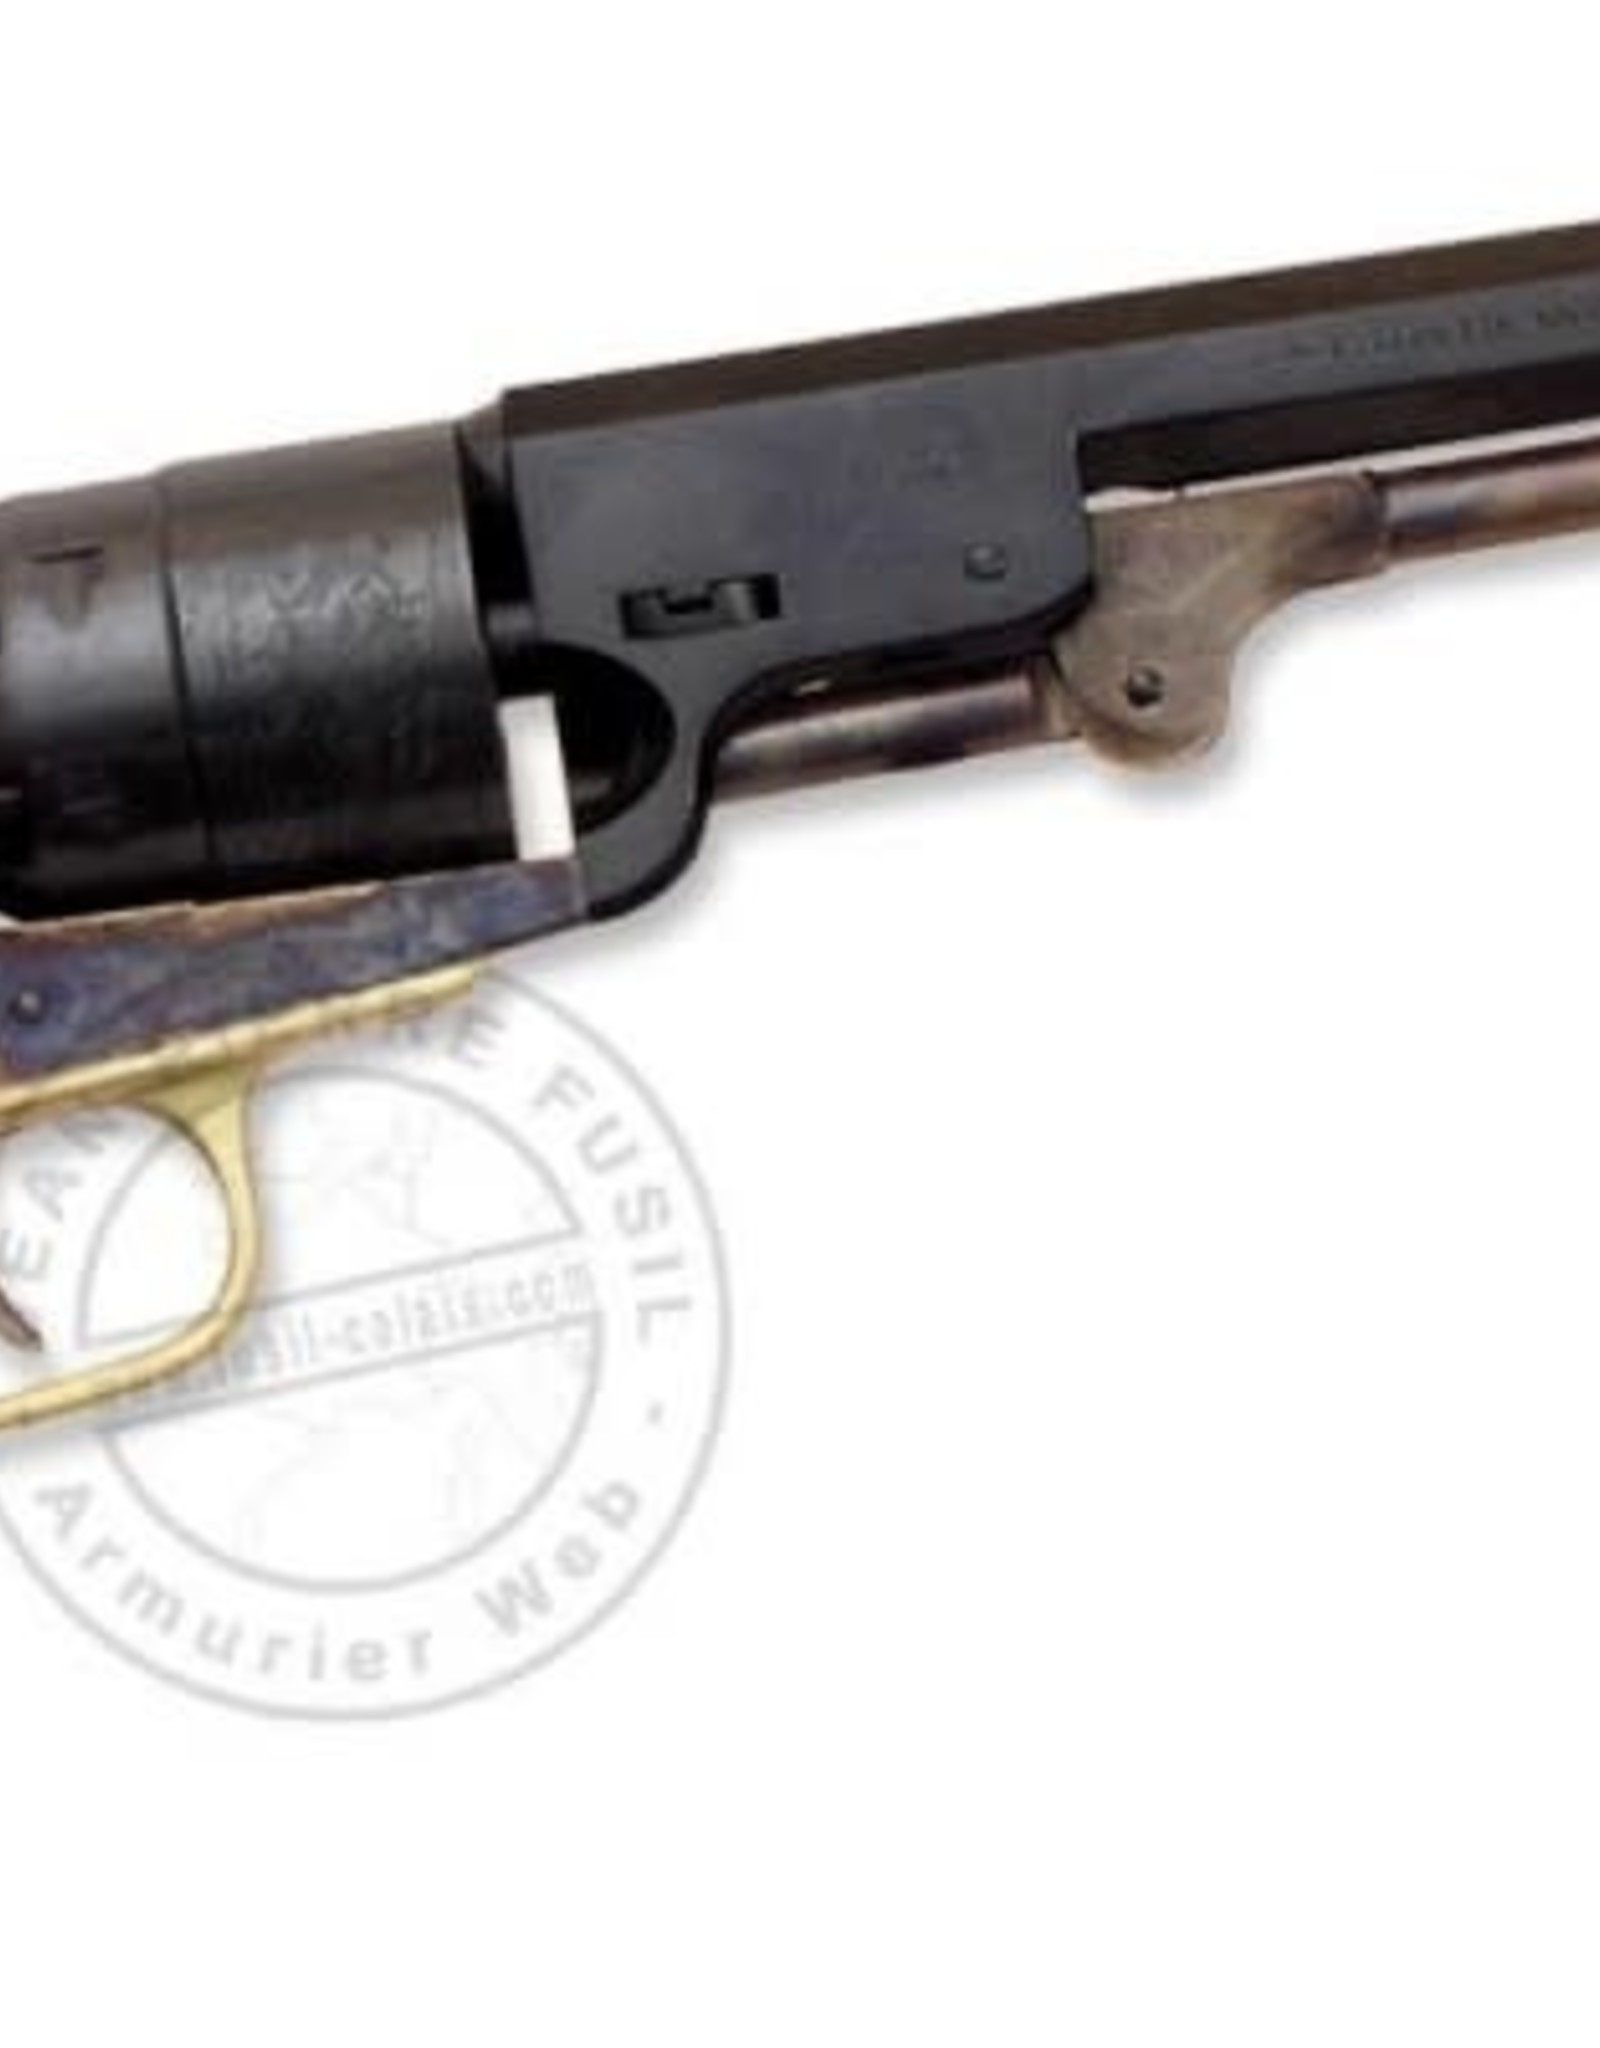 Traditions 1851 Navy Revolver .44 Cal 7.5 Blue Barrel Steel Frame- Walnut Grip